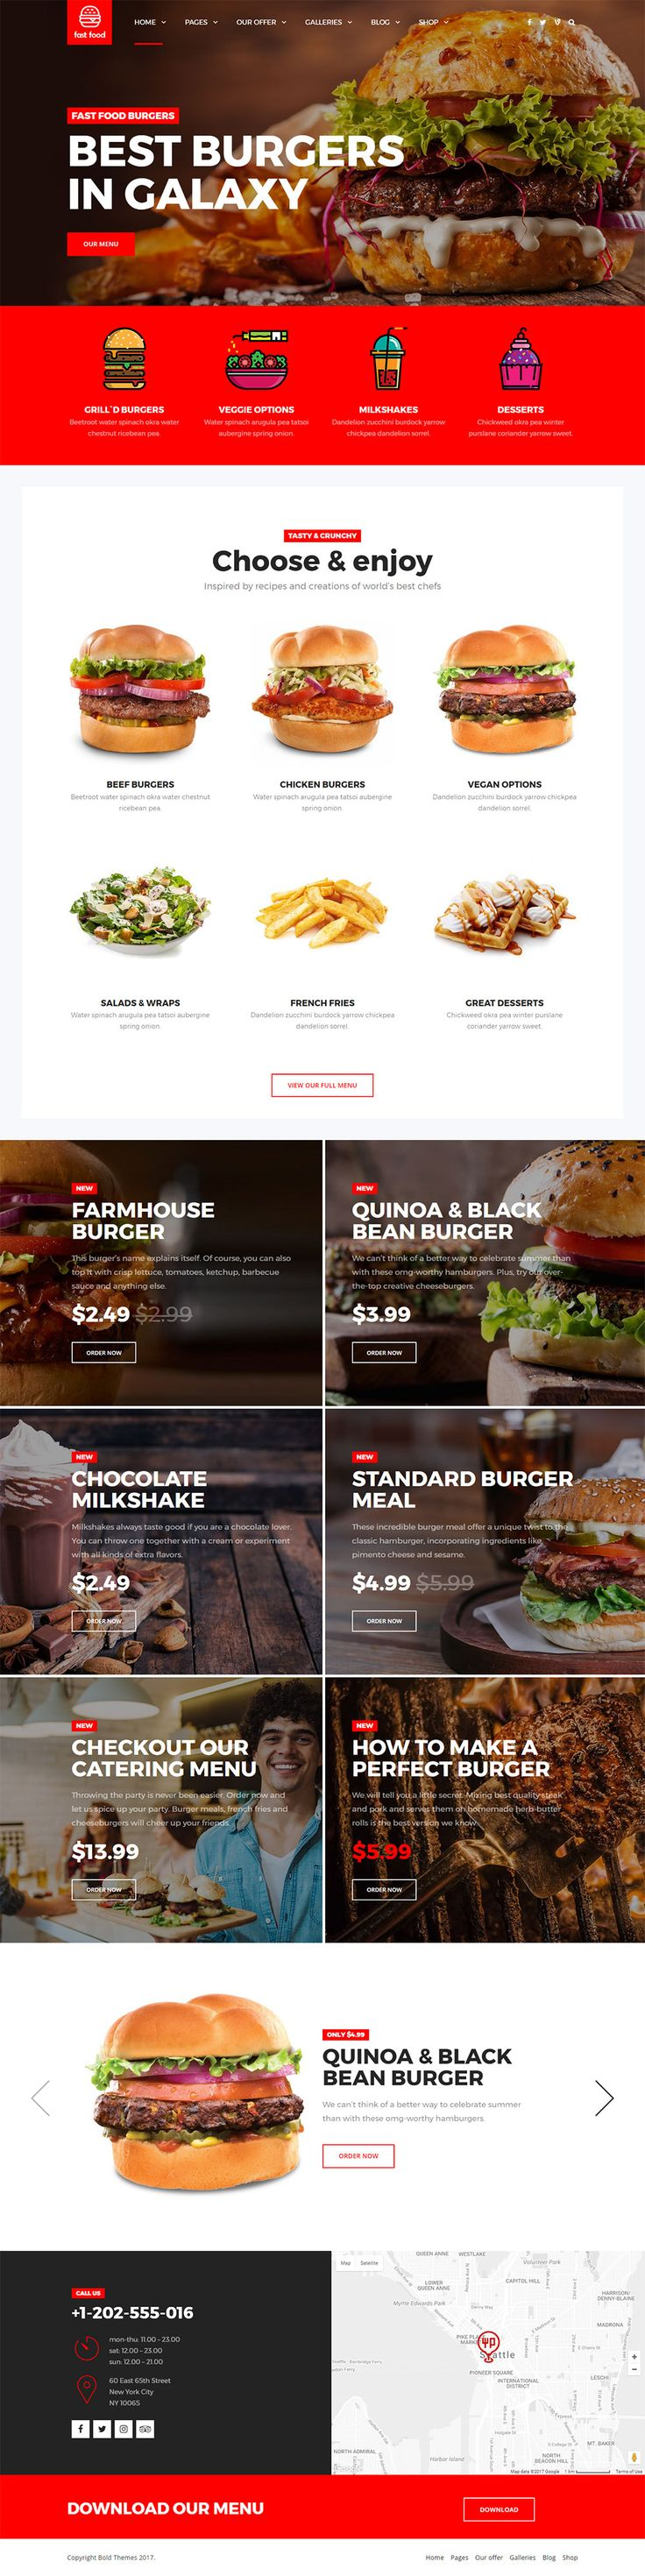 WordPress theme exclusively built for fast food, food truck, kebab, takeaway, small & pop-up restaurant websites. It is fully responsive, retina ready and easy to customize.